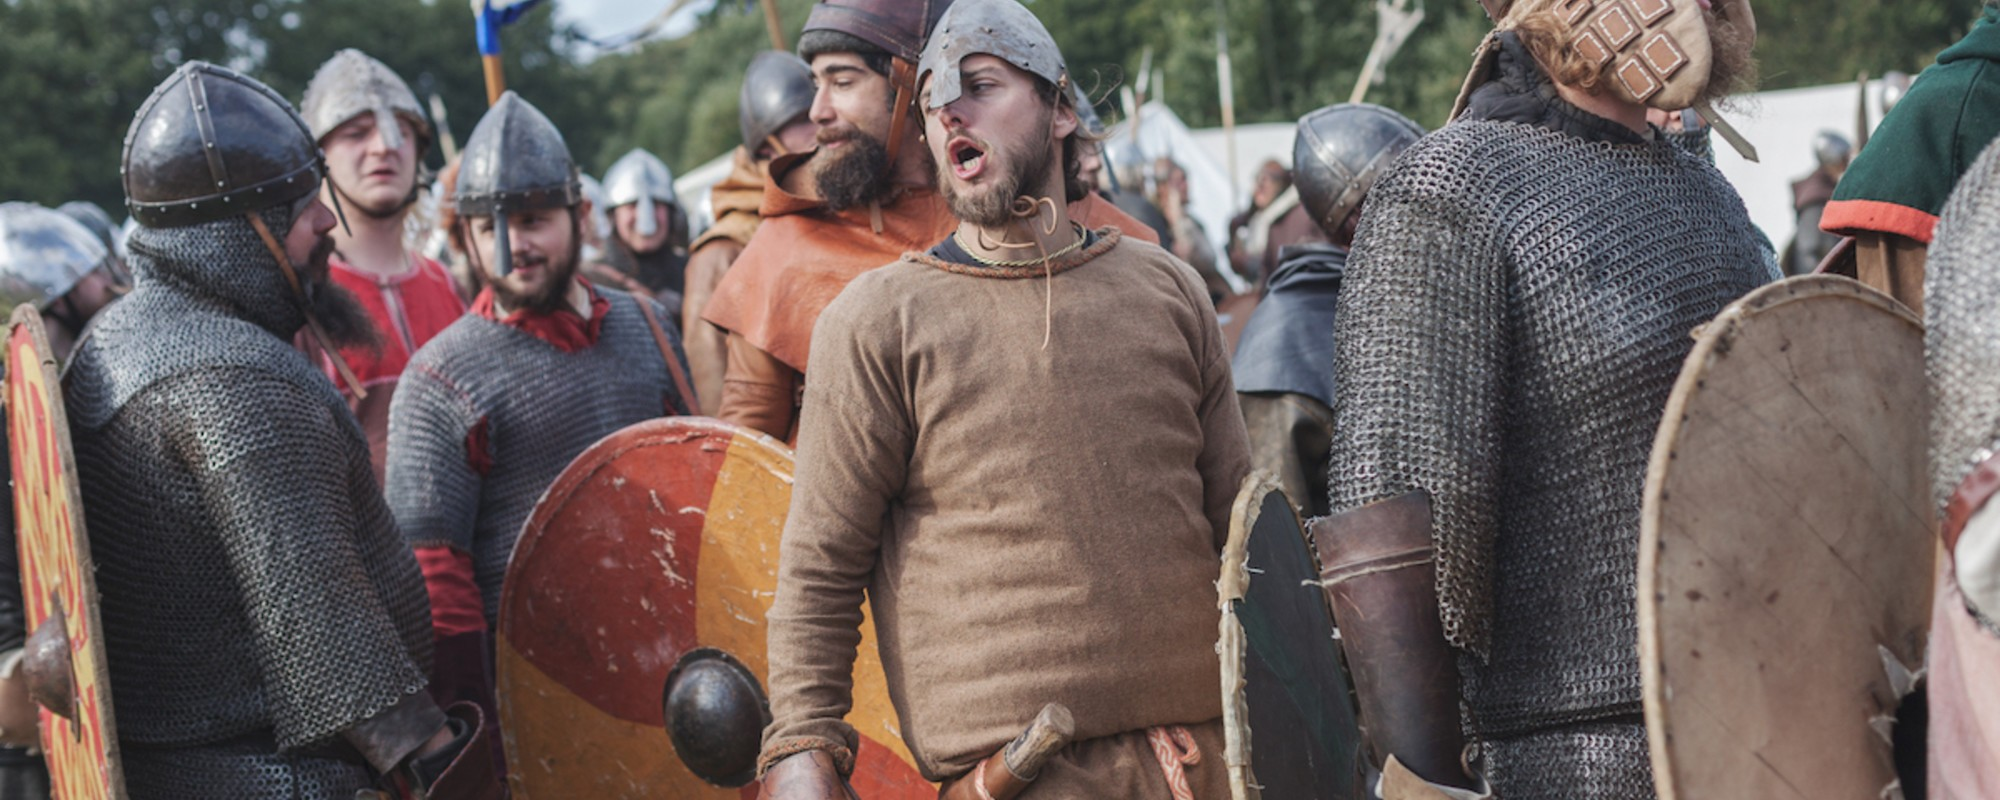 We Asked a Load of Devoted Battle Re-enactors Why They Do It